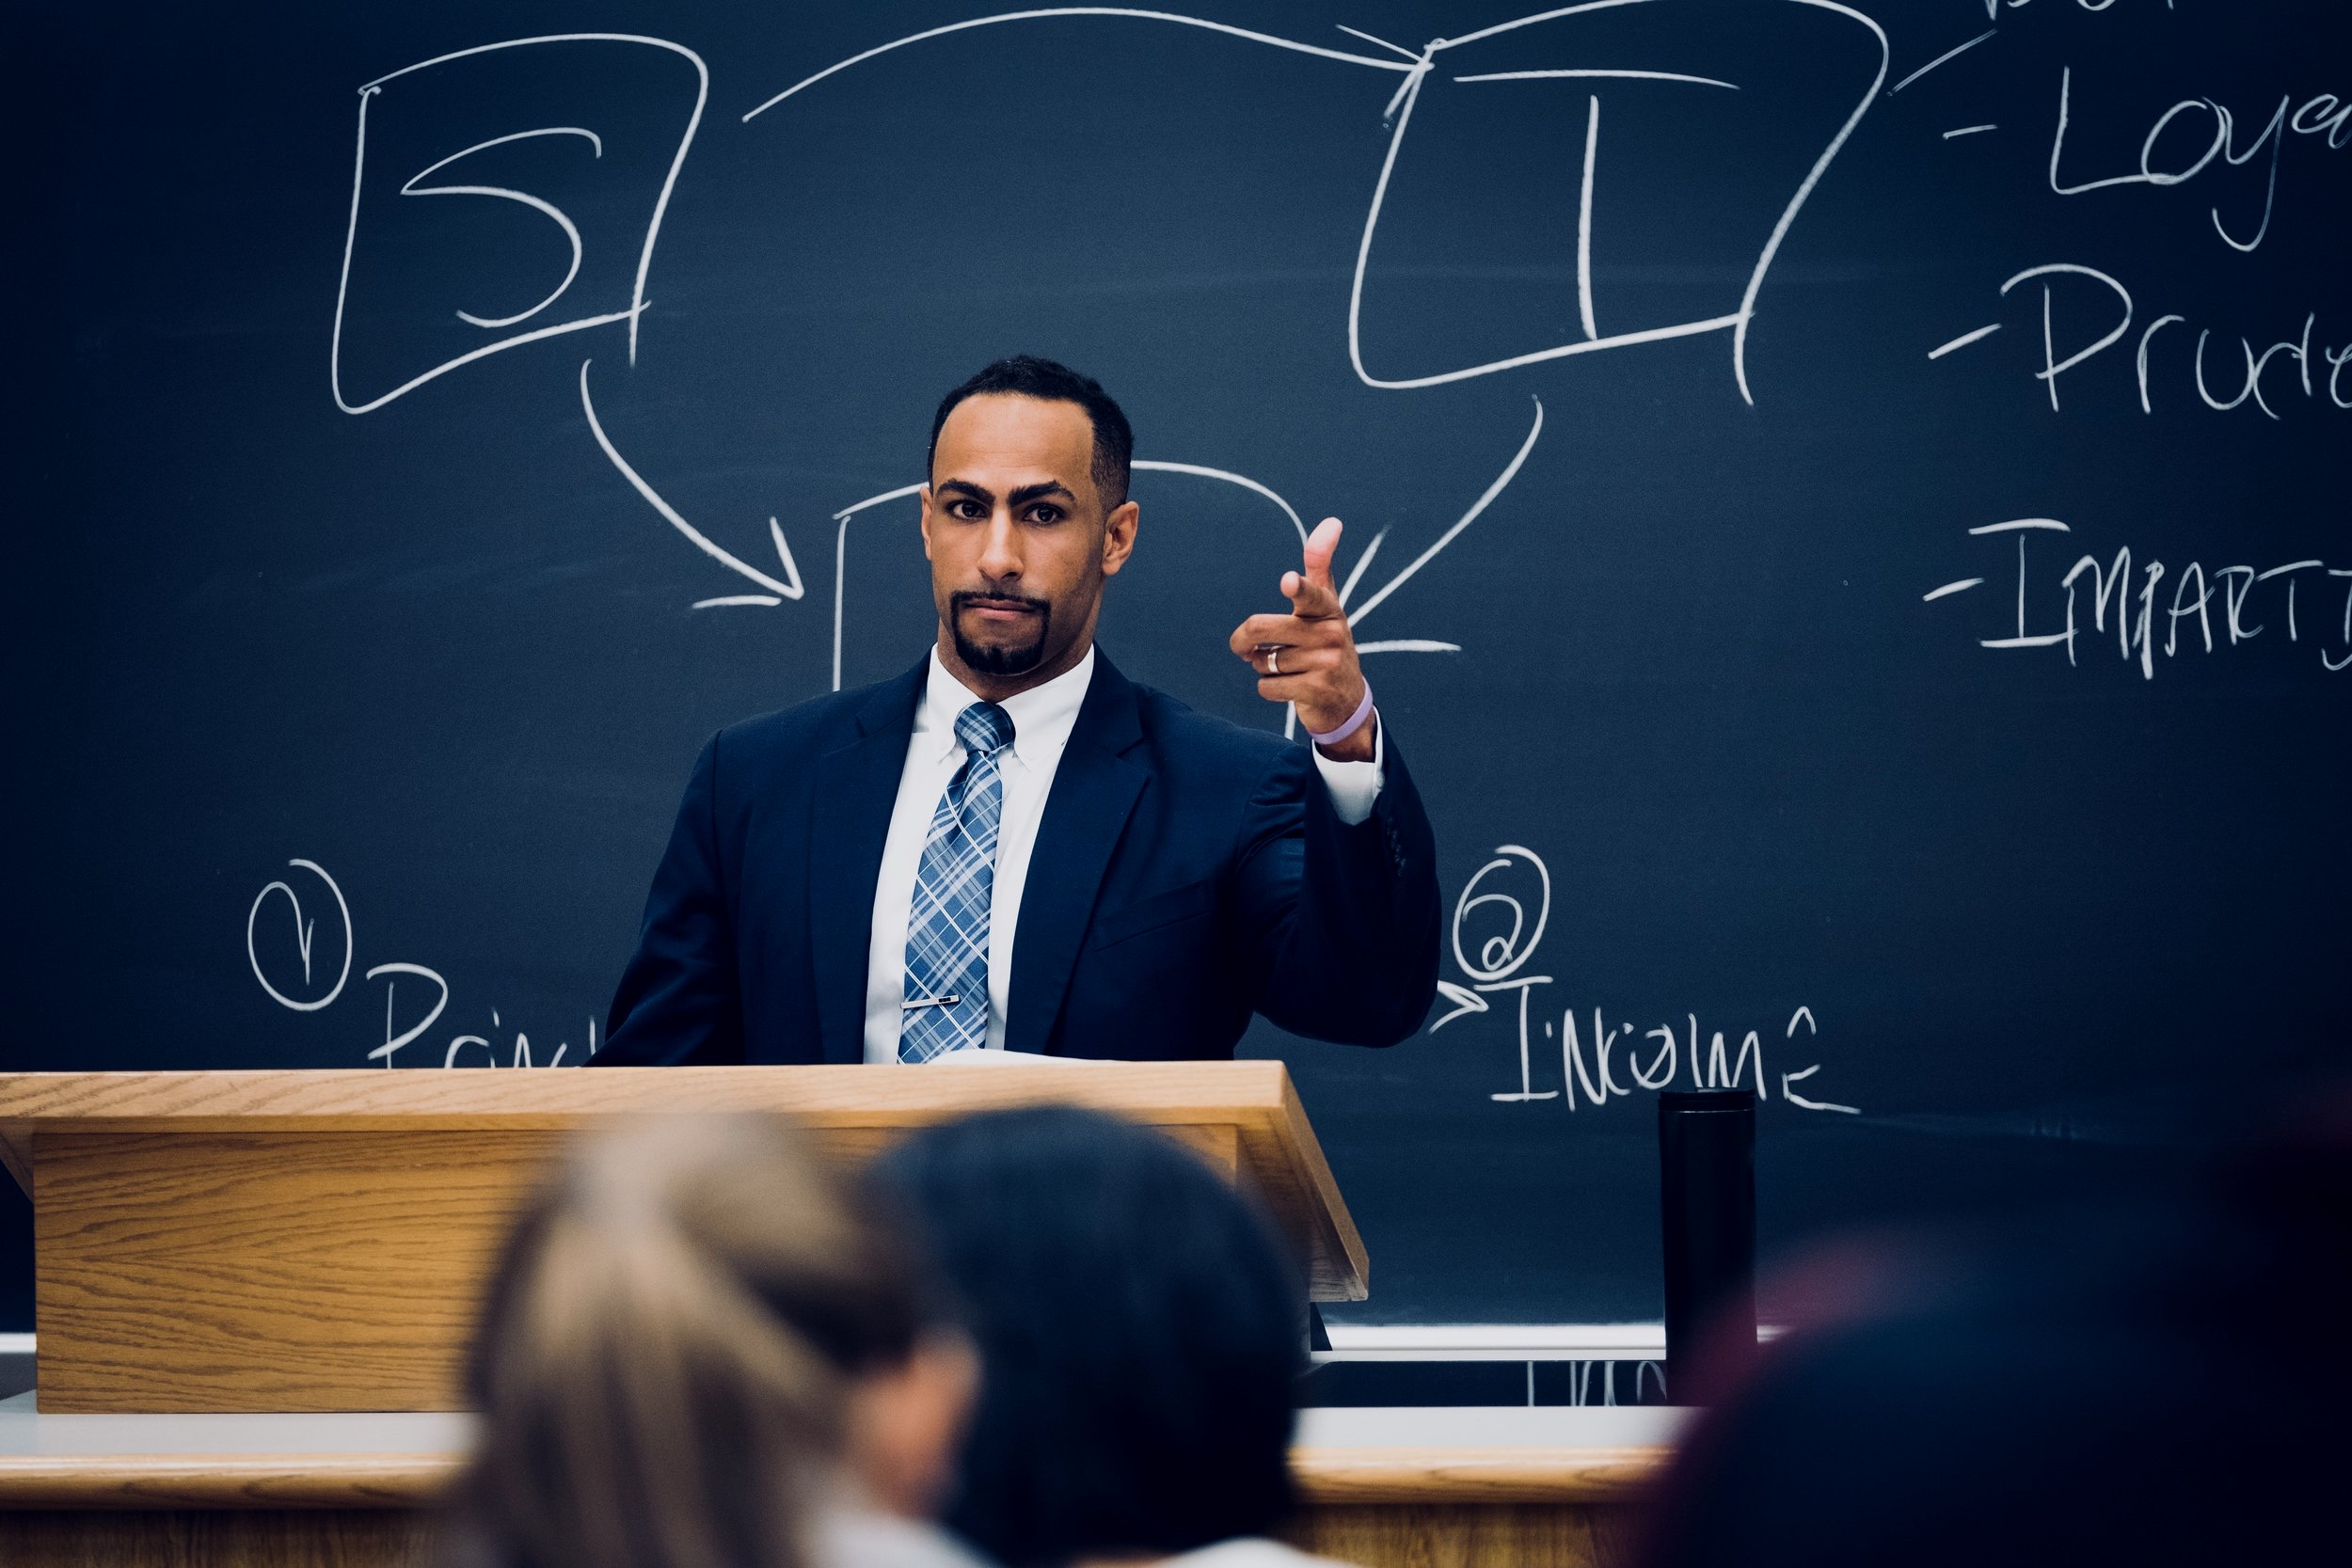 LAW PROFESSOR - Jerry is also a full-time law professor at the University of Pittsburgh School of Law, where he shapes the legal minds of America's future lawyers. He teaches constitutional law, property, and affordable housing. His scholarship in constitutional law and property has garnered him praise for his advocacy against the overreach of the Trump Administration.